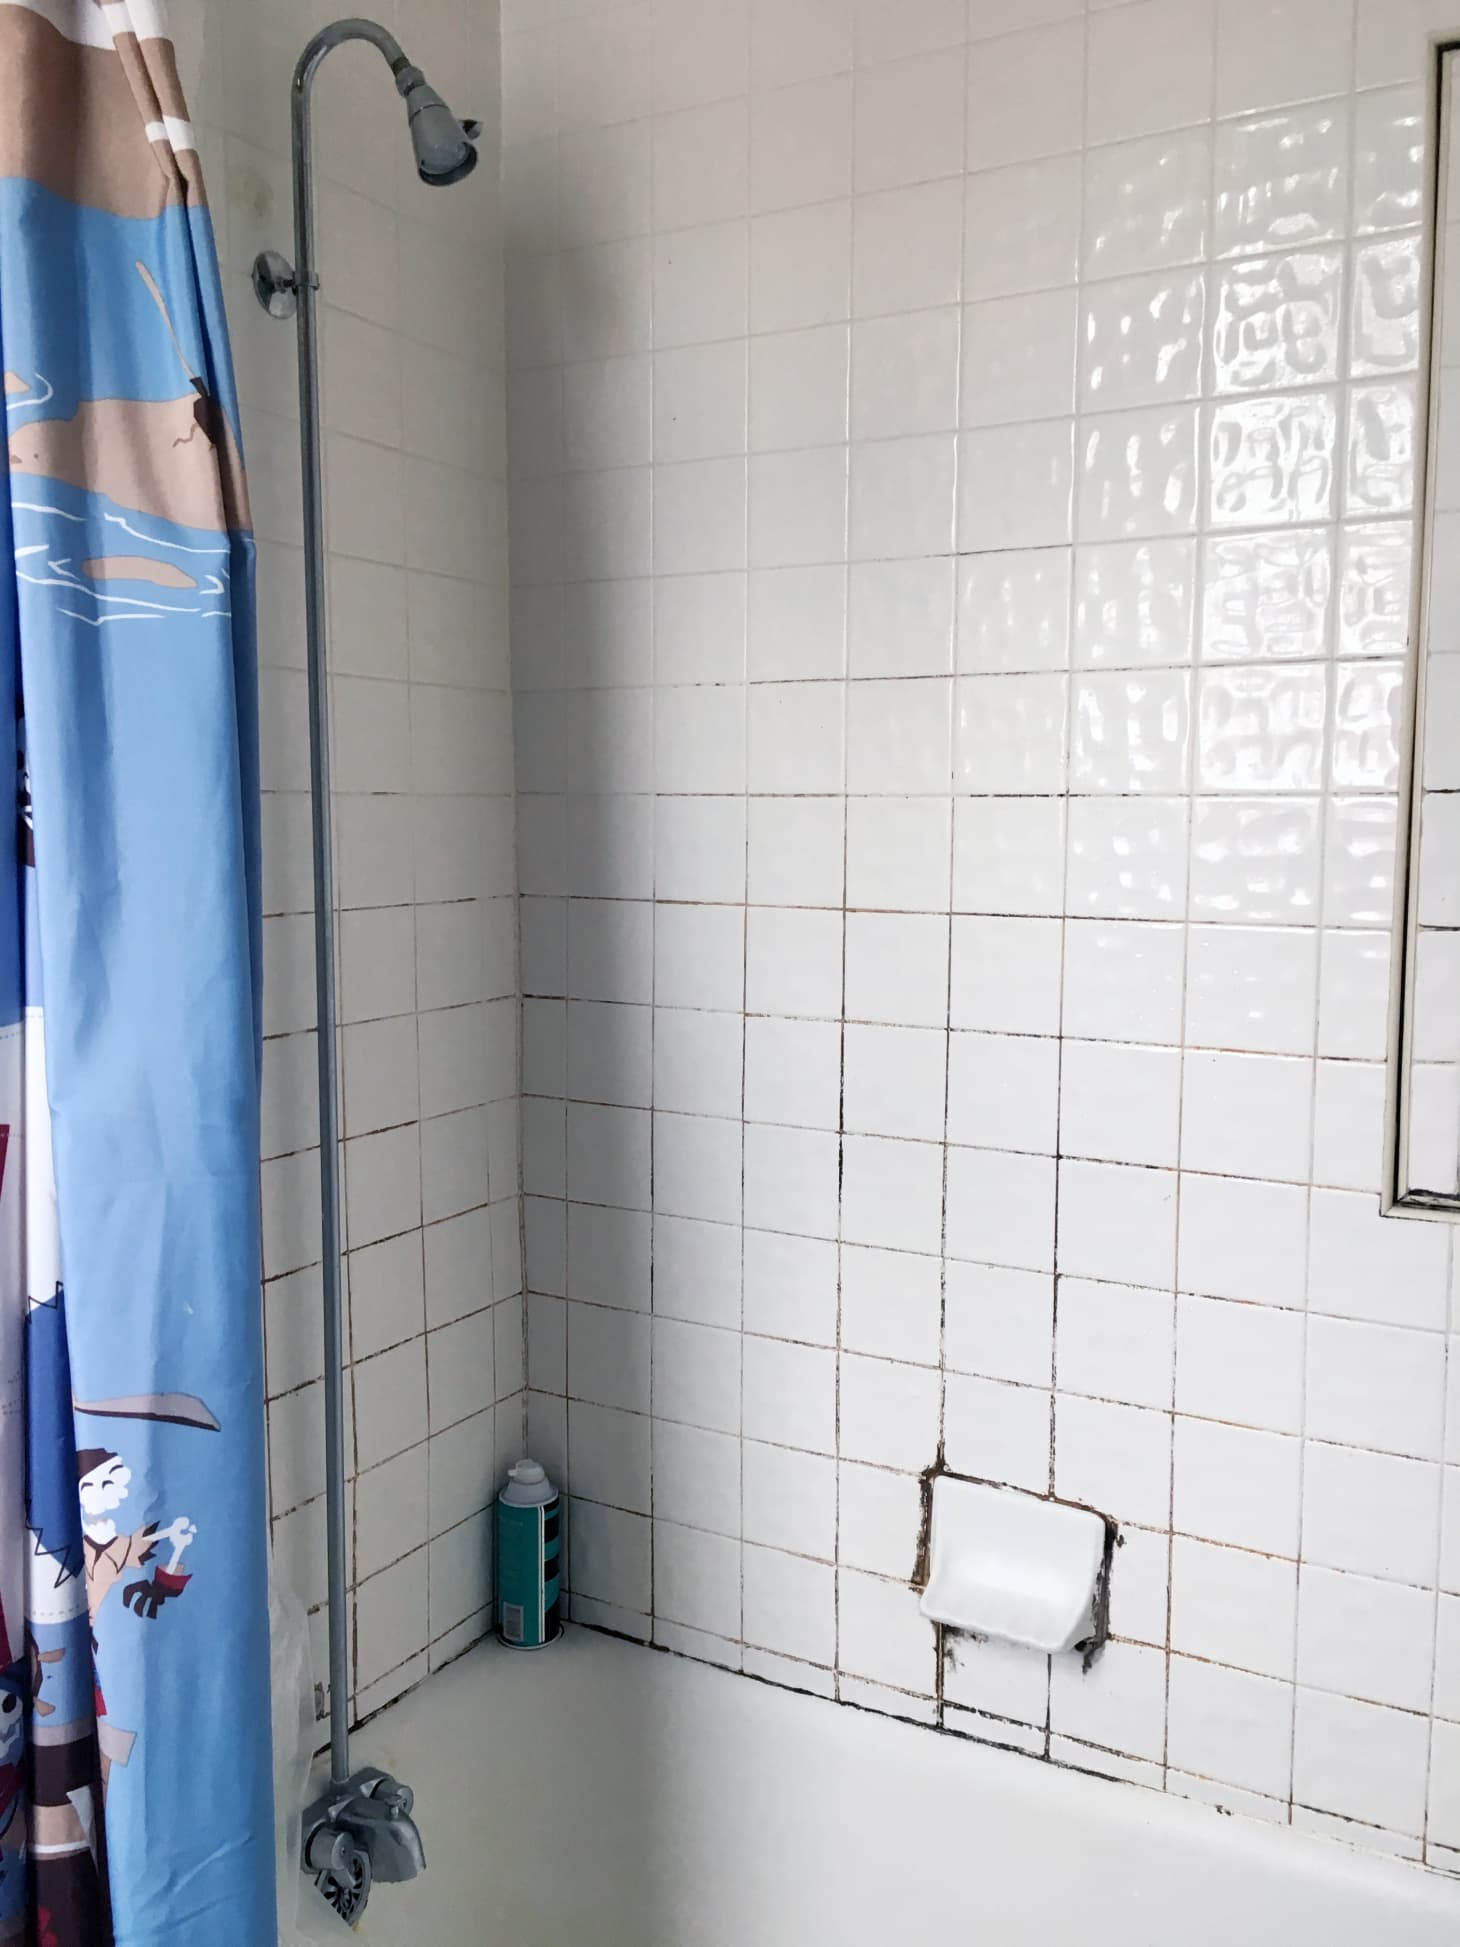 Best Grout Cleaner Options For Rusty Moldy Shower Tile